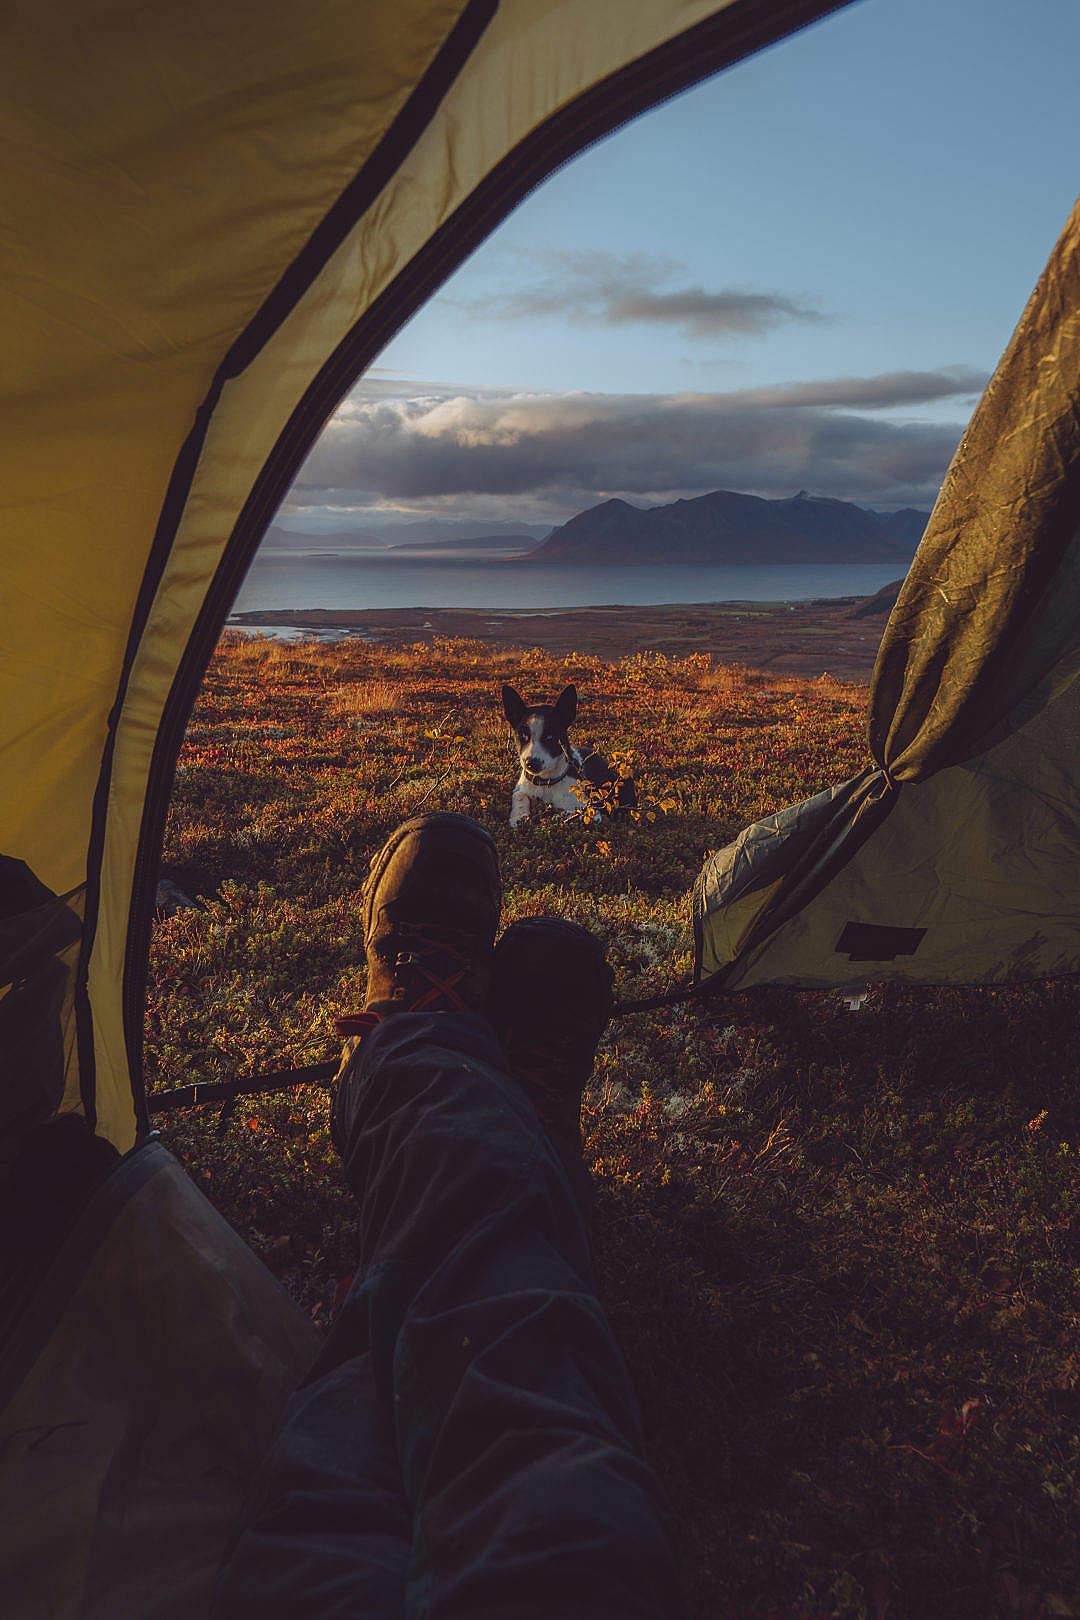 34+ Camping Wallpaper Iphone Hd Pictures